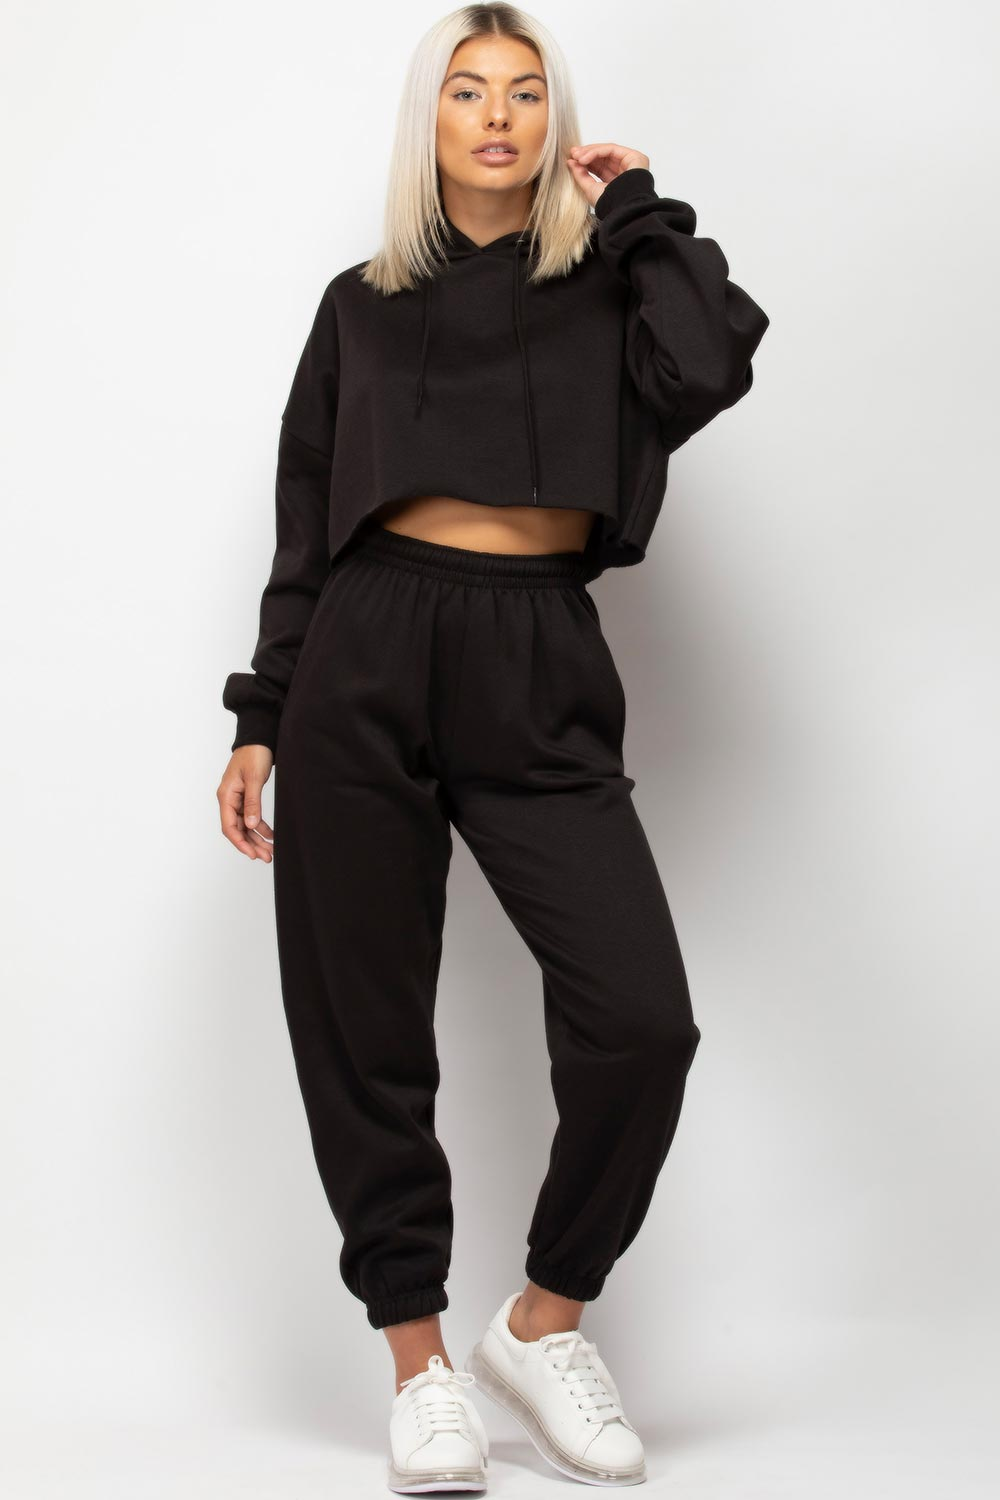 black joggers and hoodie lounge set